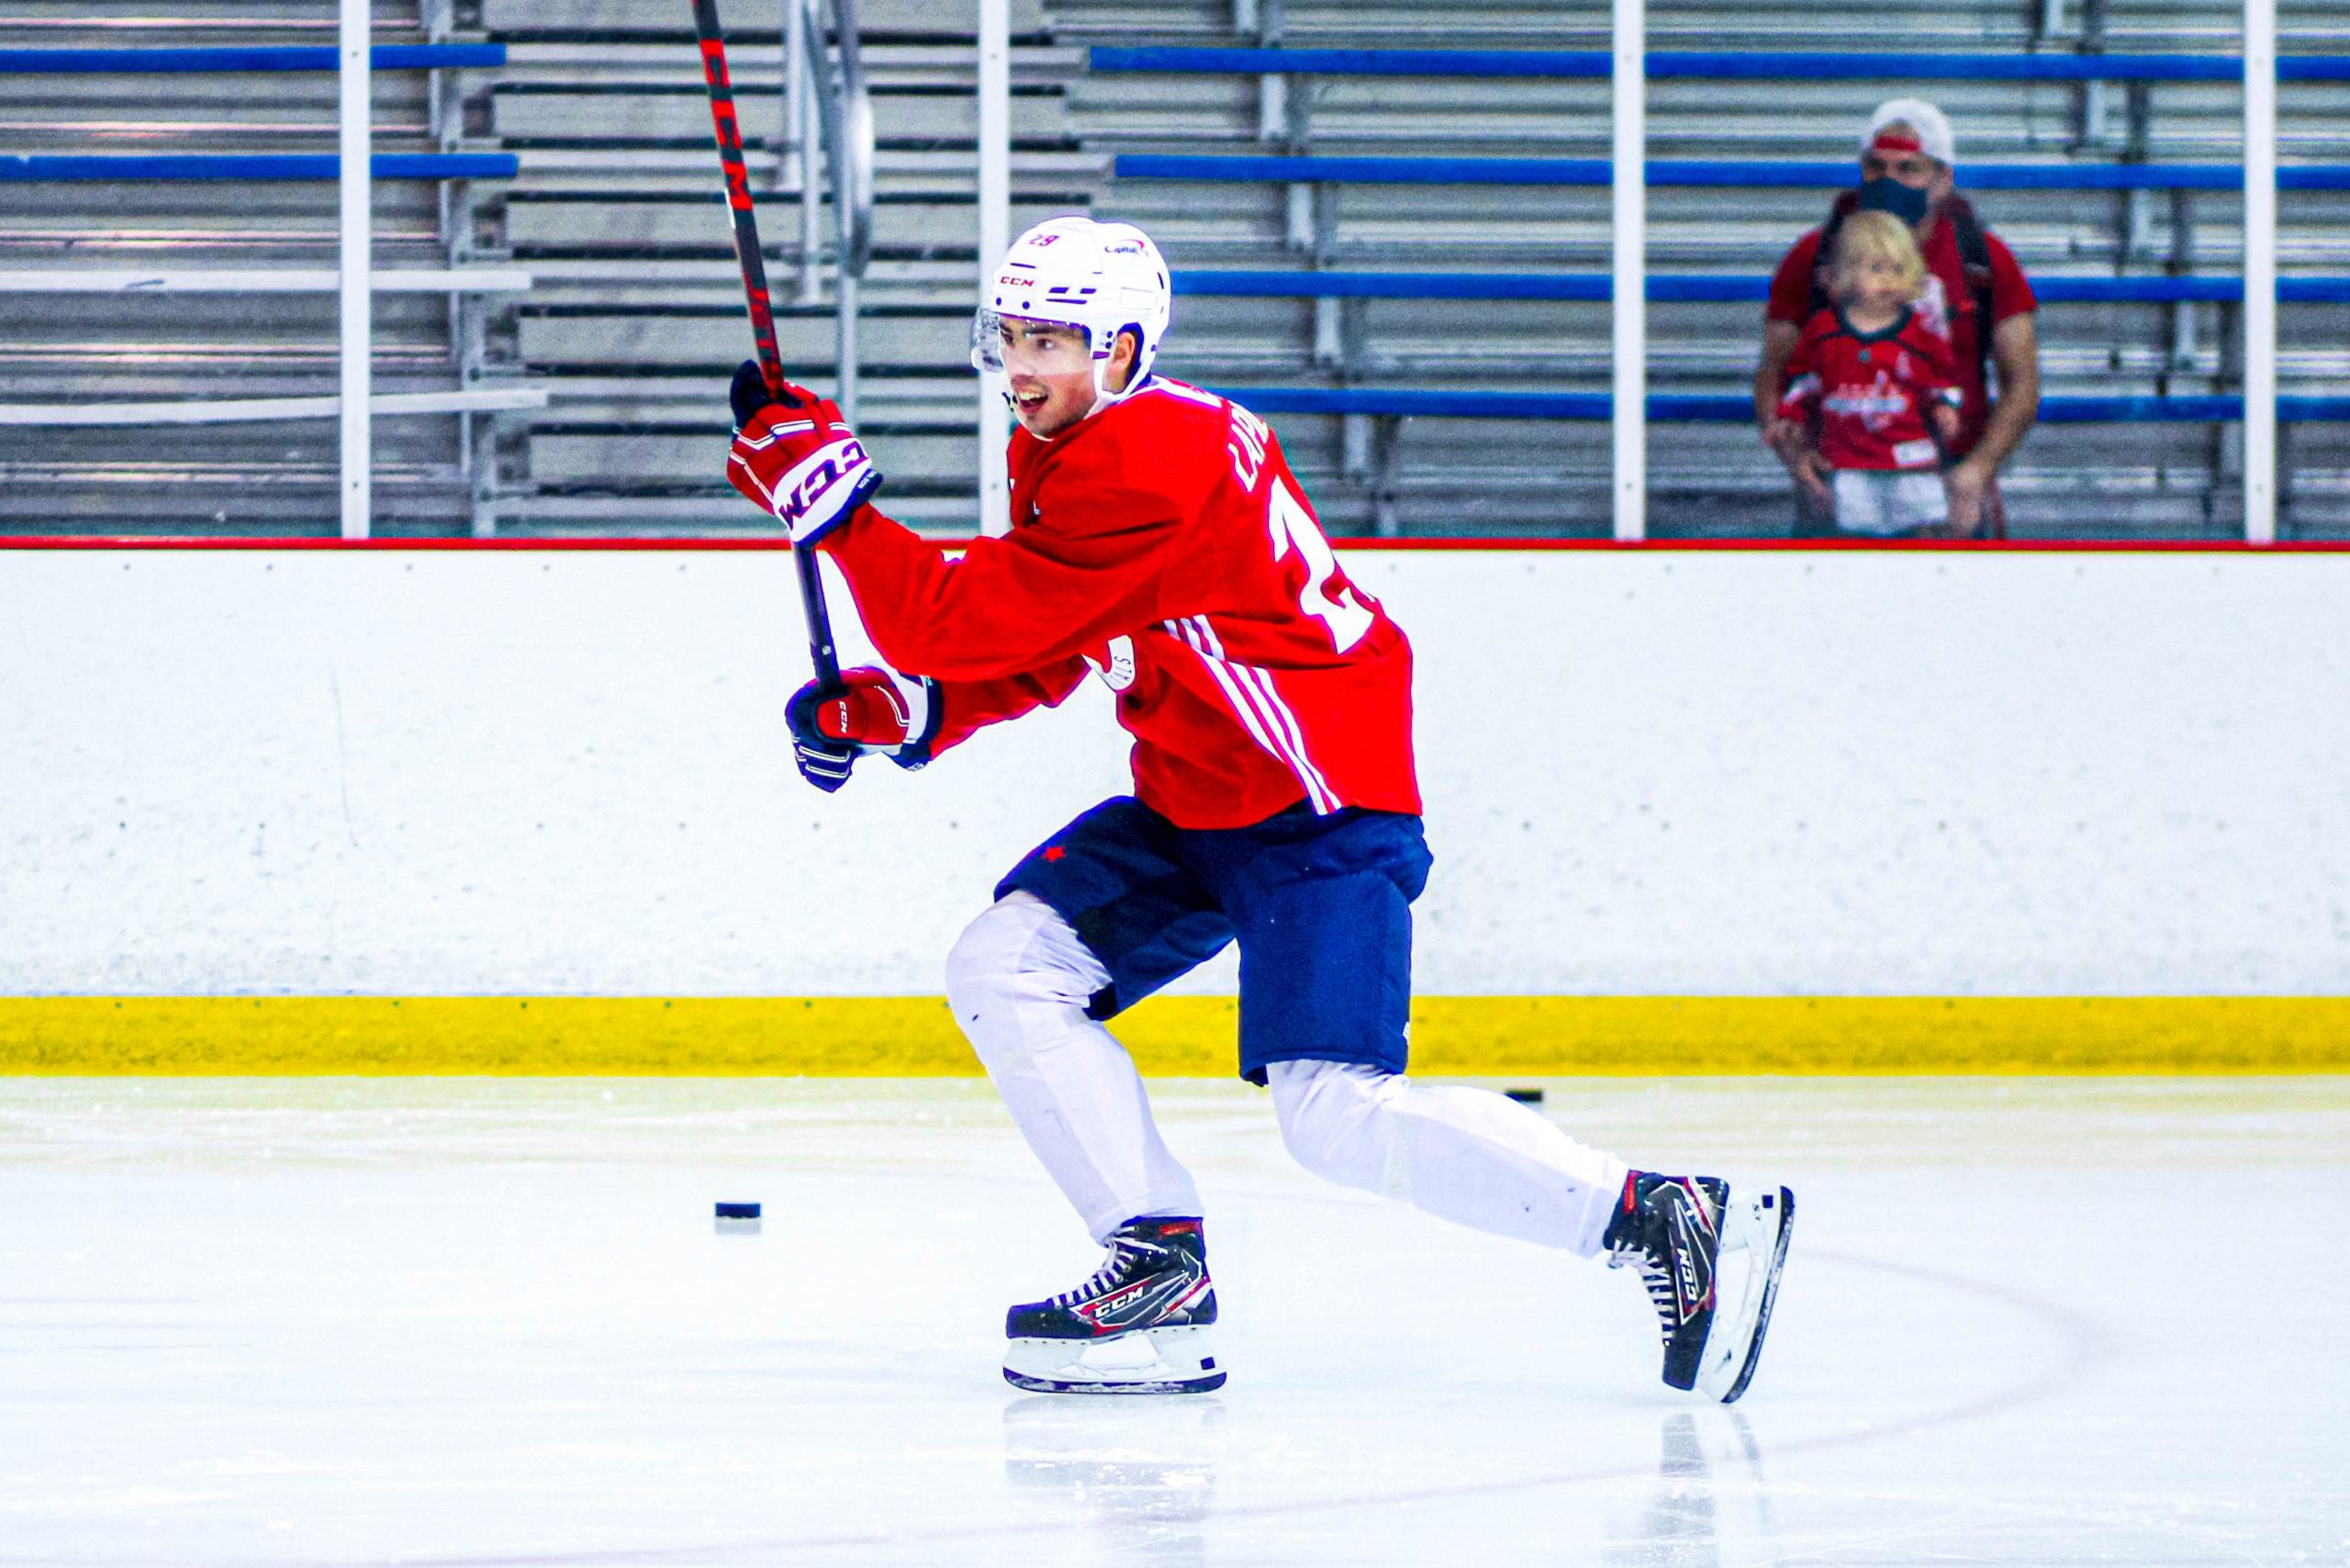 Silber: Lapierre-Mania Sweeps D.C.; Capitals' Youth Movement Takes Hold